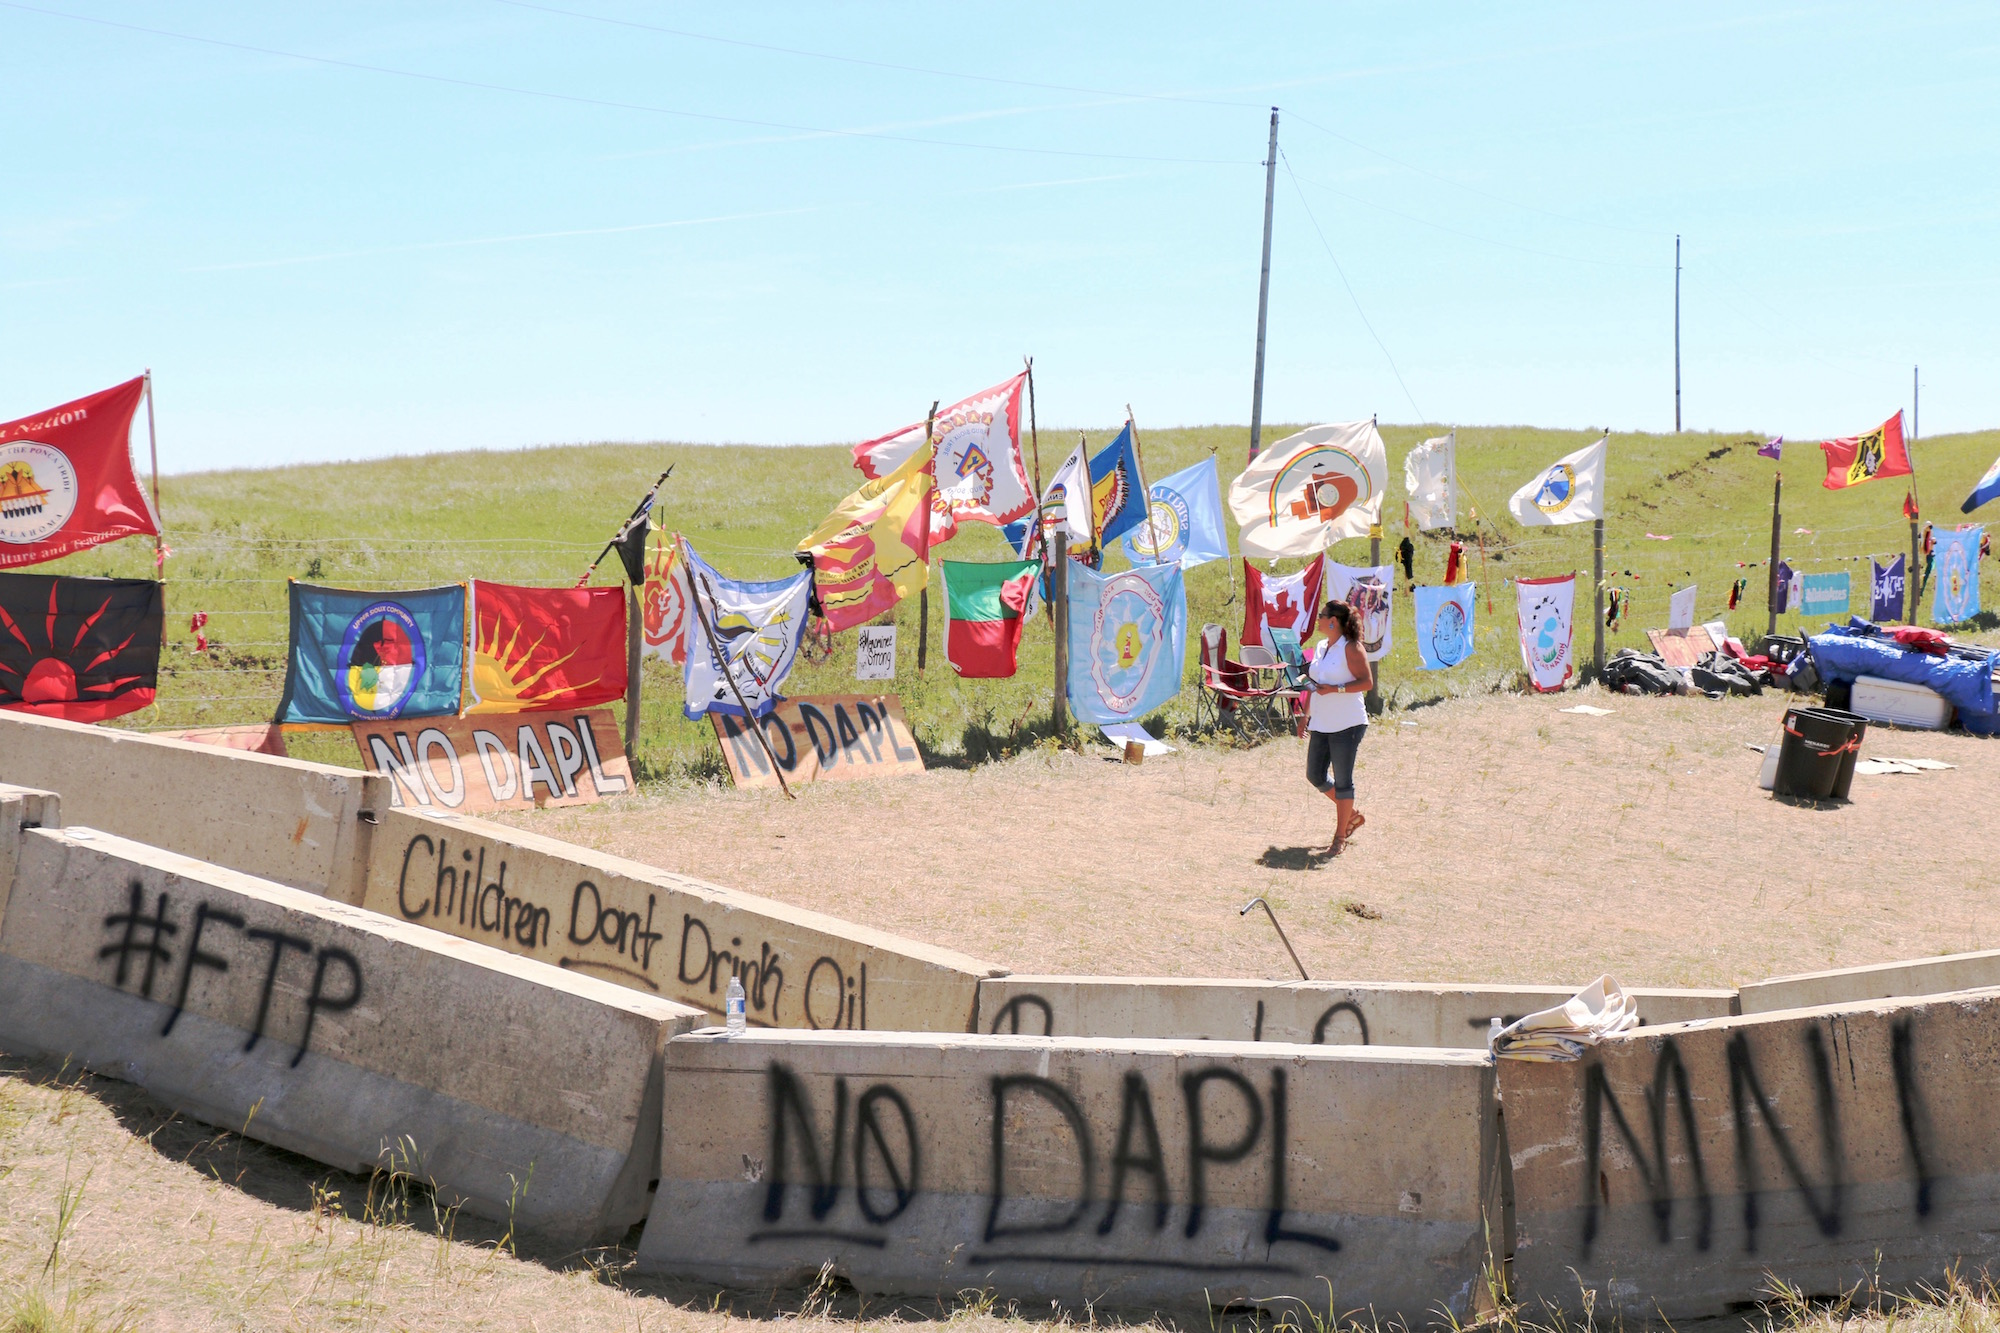 Cheyenne & Arapaho Tribal Tribune: Support and unity at Standing Rock Sioux Tribe's #NoDAPL camp